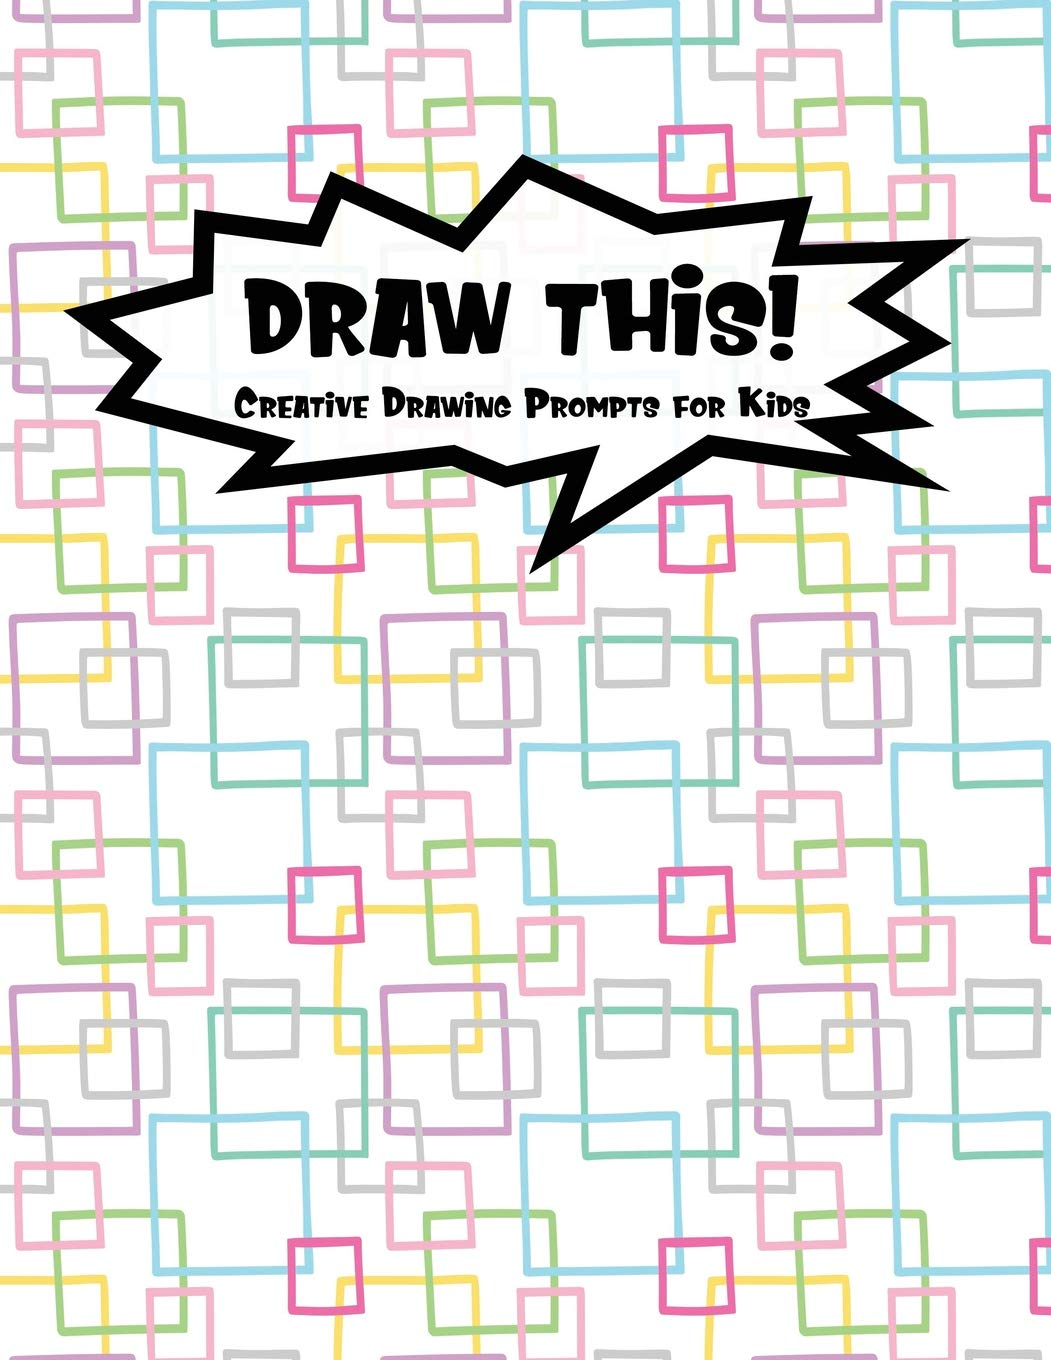 Draw This!: 100 Drawing Prompts for Kids | Rainbow Squares